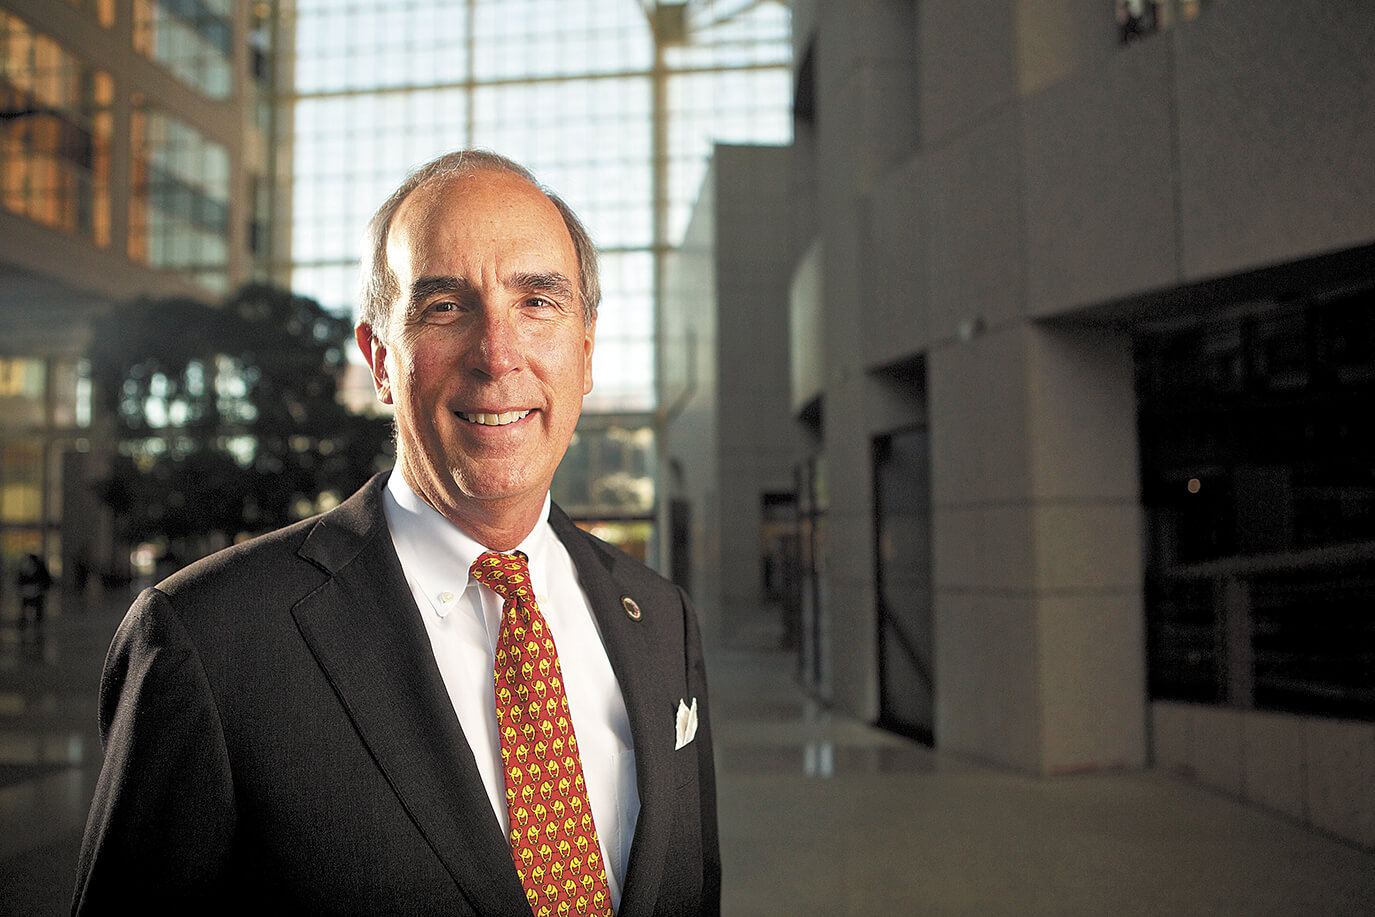 COVER STORY: Mayor Sandy Stimpson looks to next three years in office